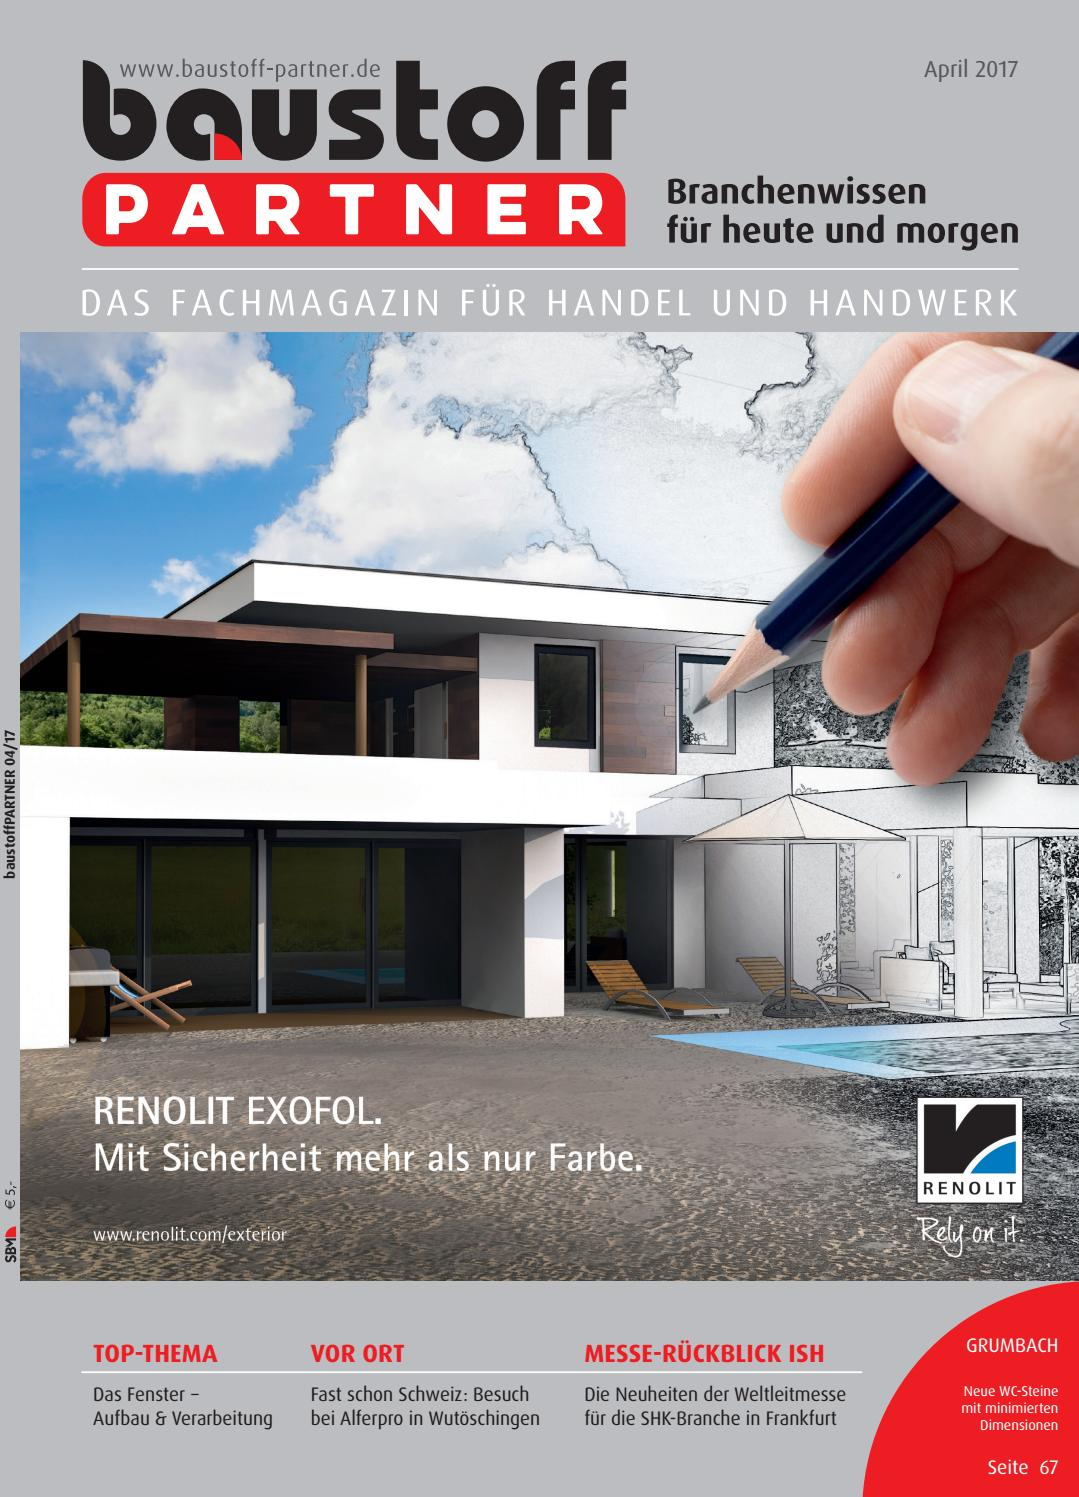 Toll BaustoffPARTNER April 2017 By SBM Verlag GmbH   Issuu